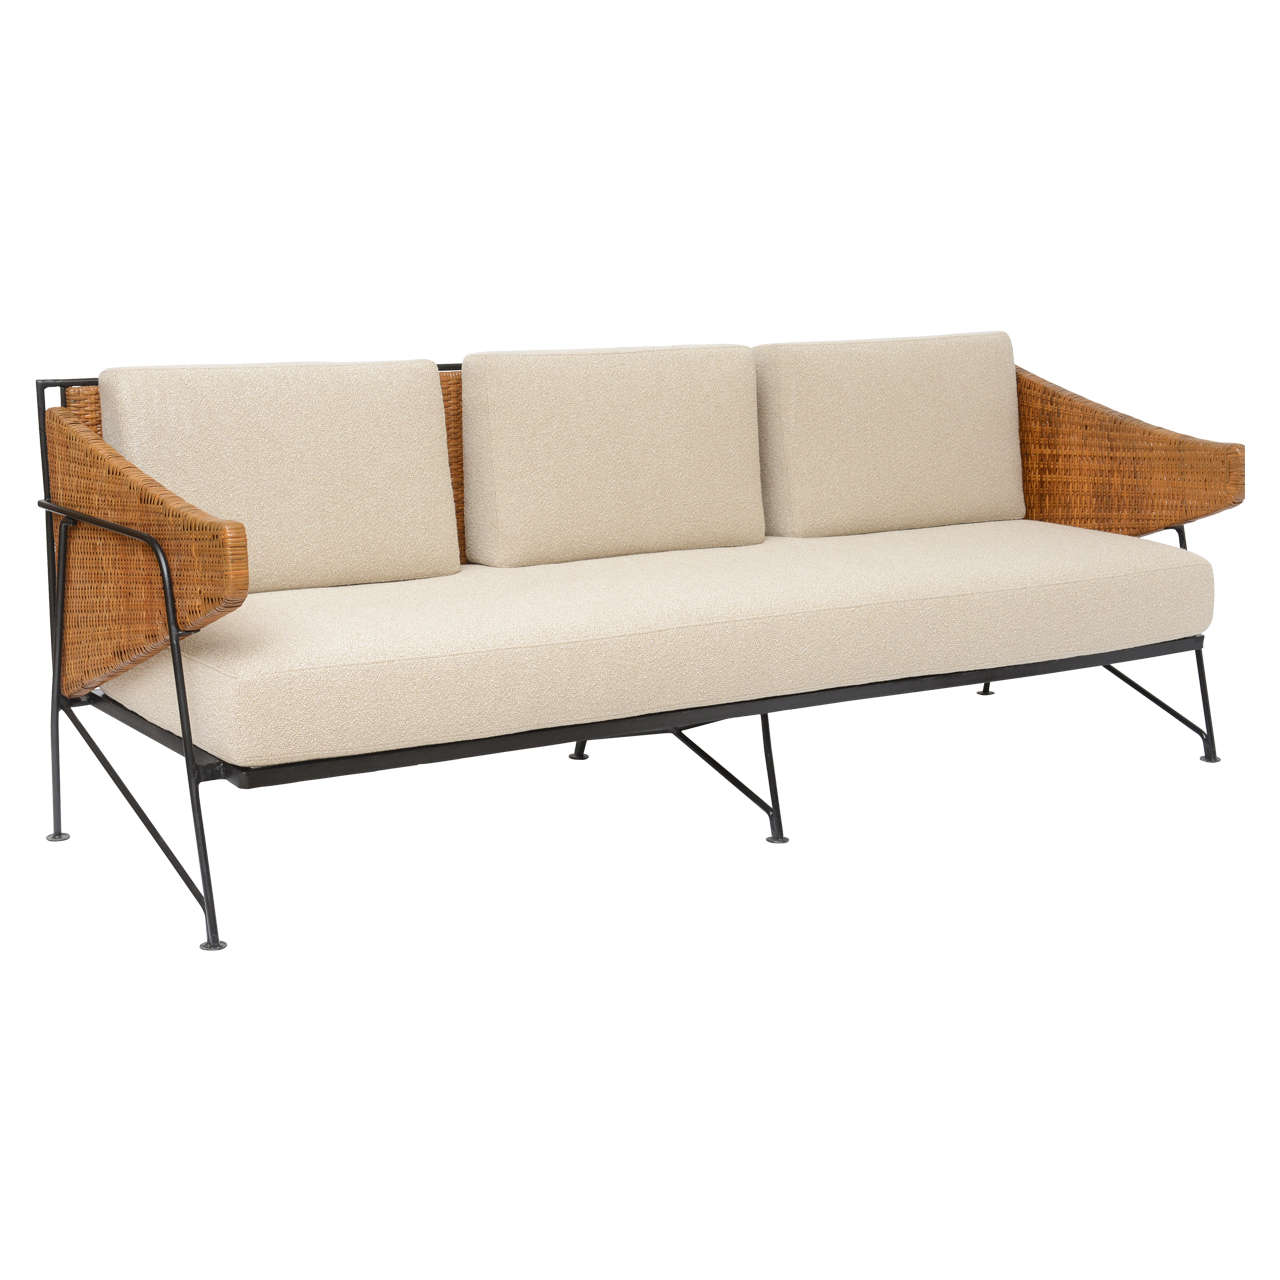 wrought iron sofa set online 100 cotton slipcovers and wicker by maurizio tempestini for